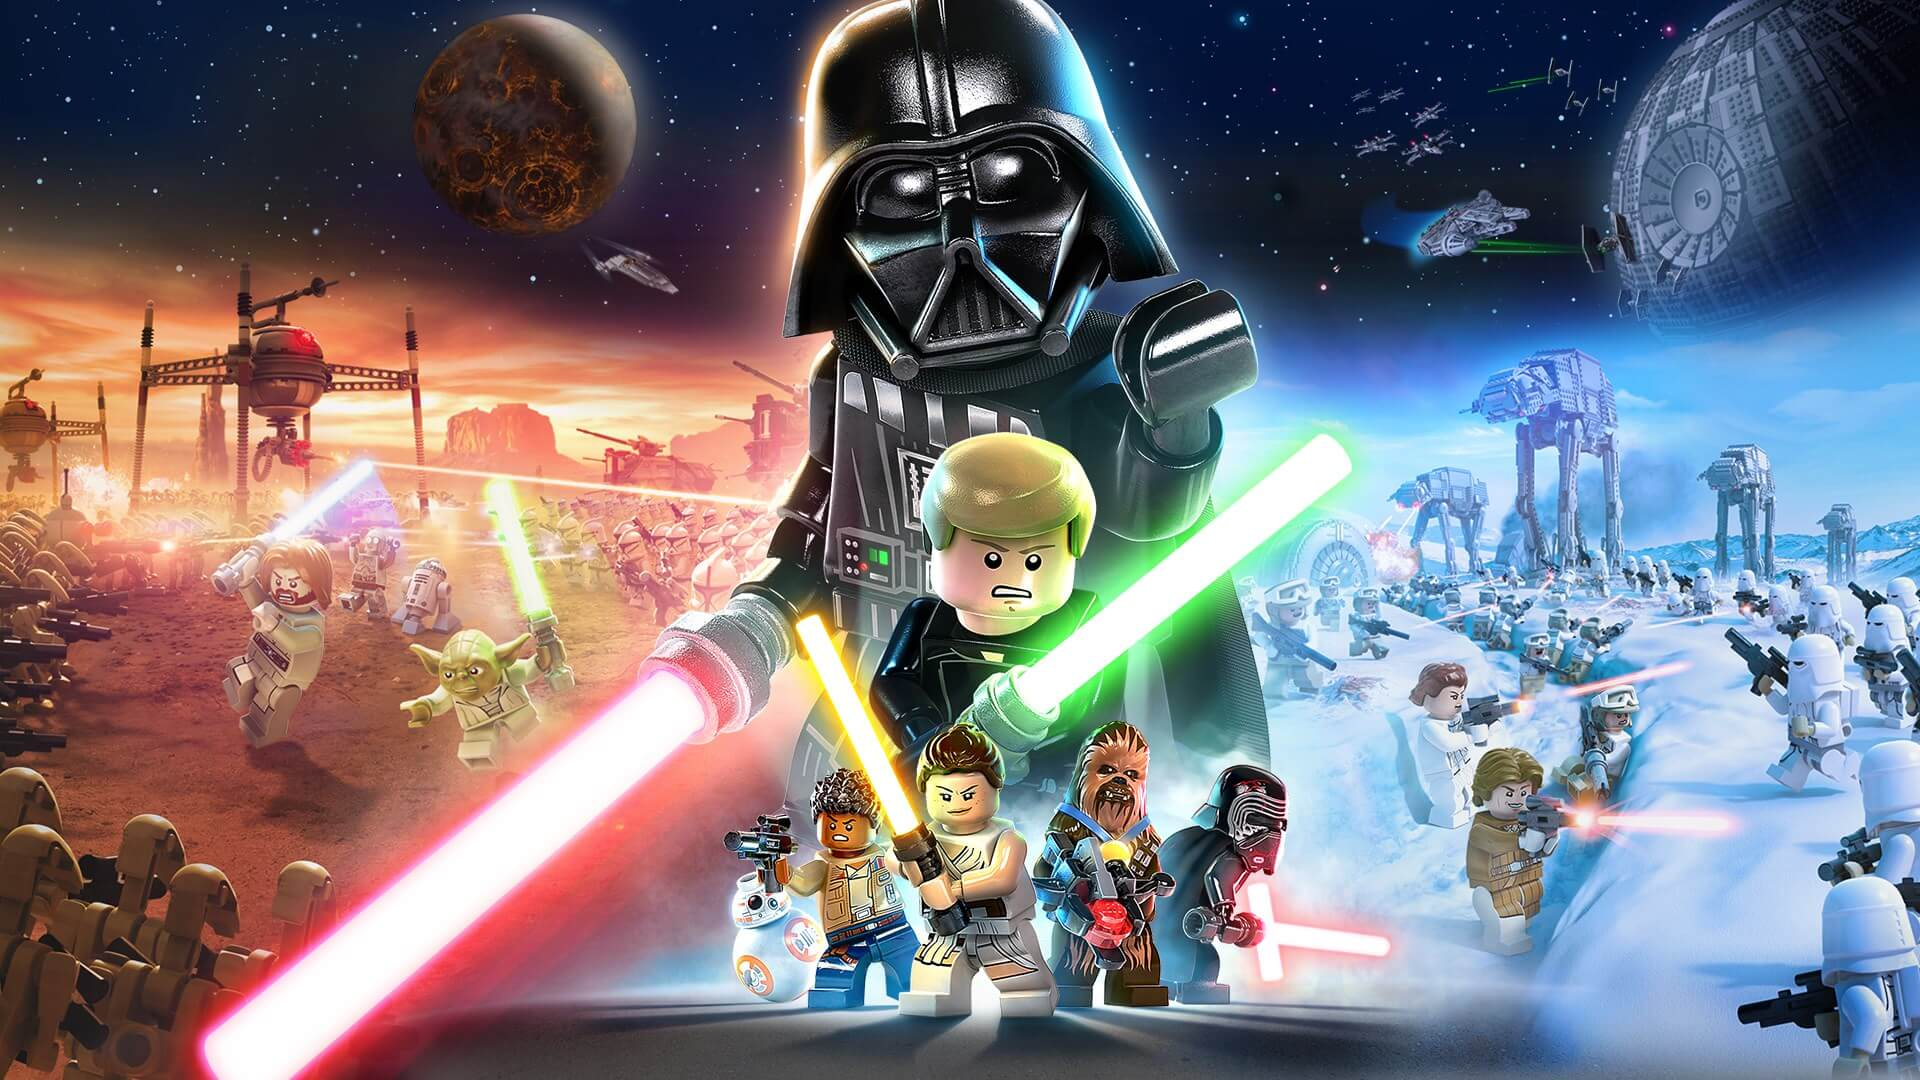 Ubisoft Announces Story-Driven Open-World Star Wars Game